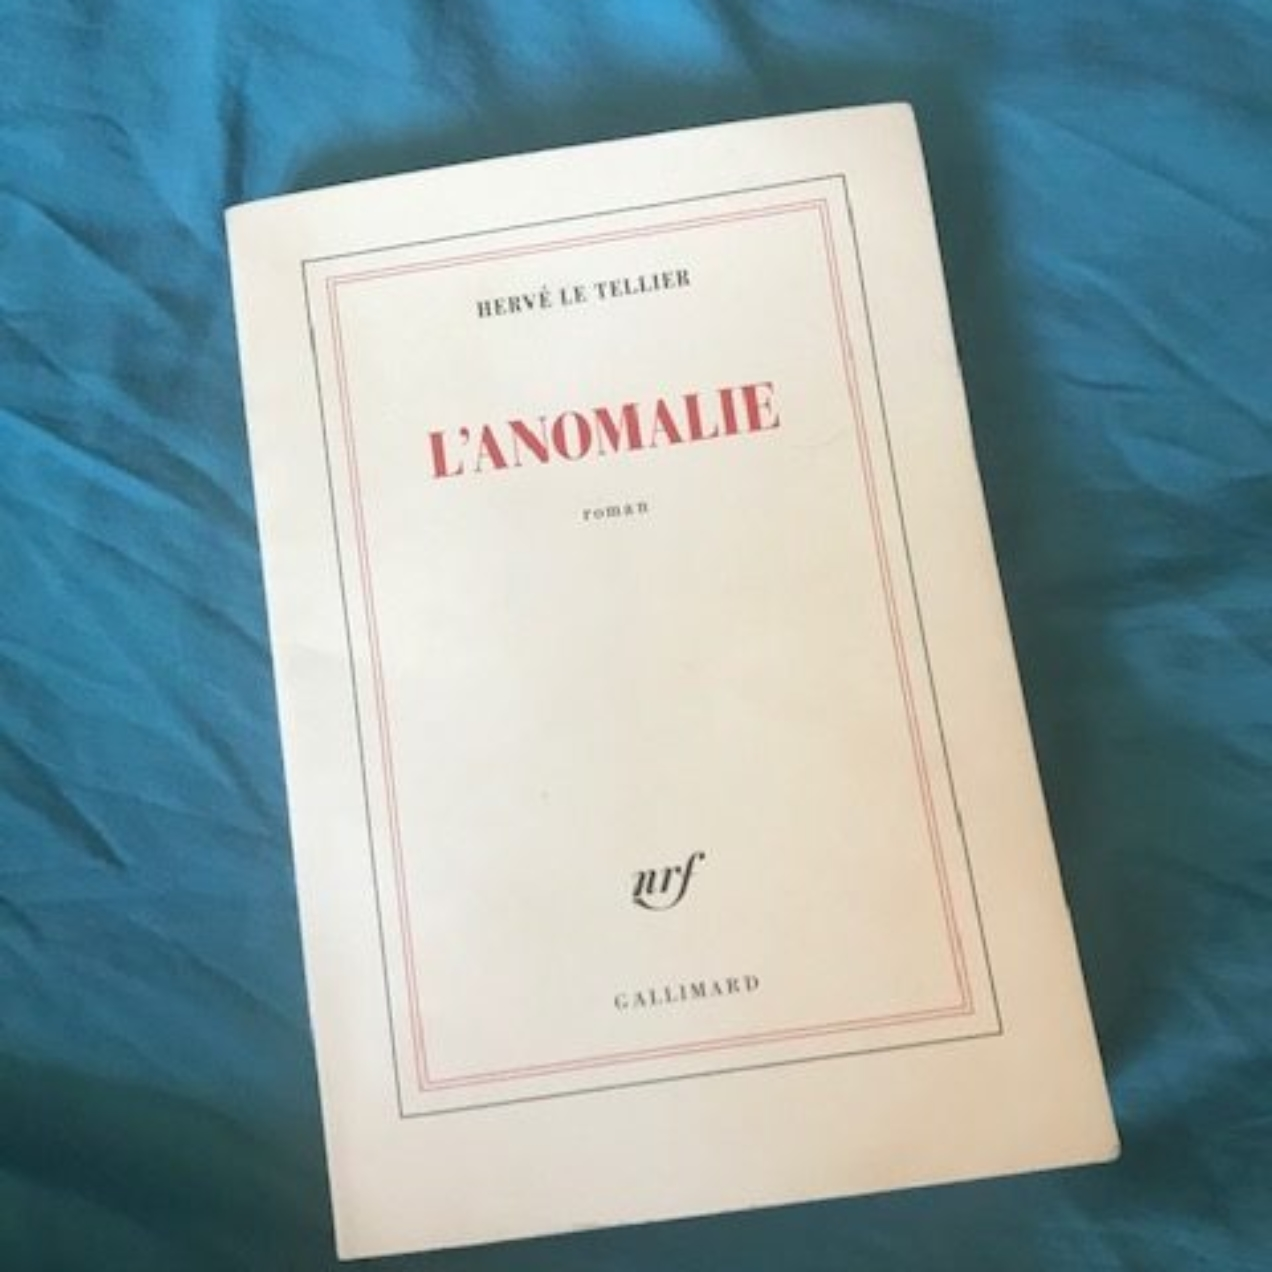 lecture #138 : L'anomalie